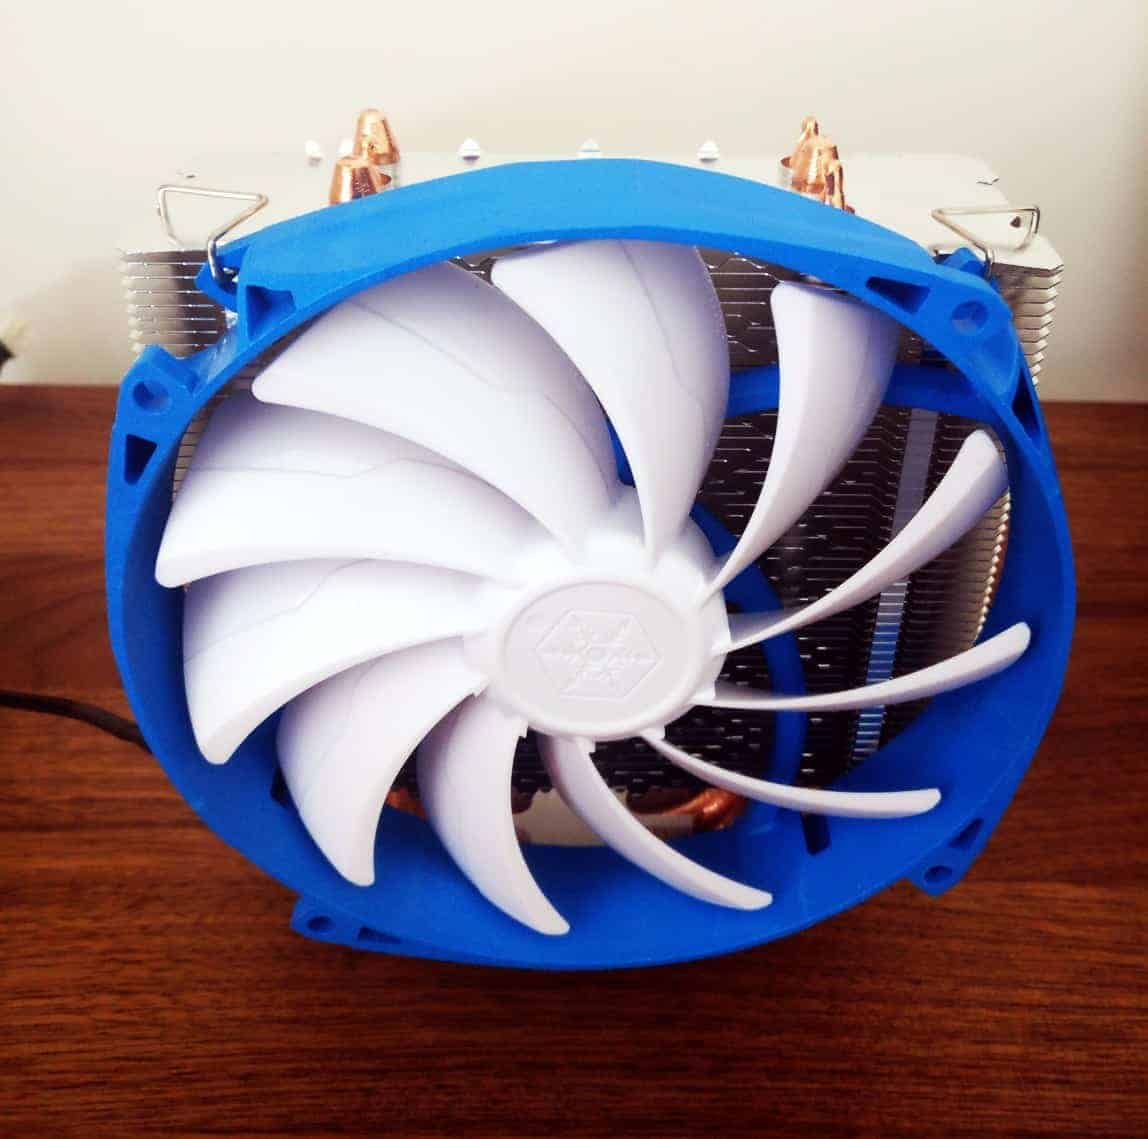 Silverstone-AR07-Photos40 Silverstone Argon AR07 CPU Cooler Review